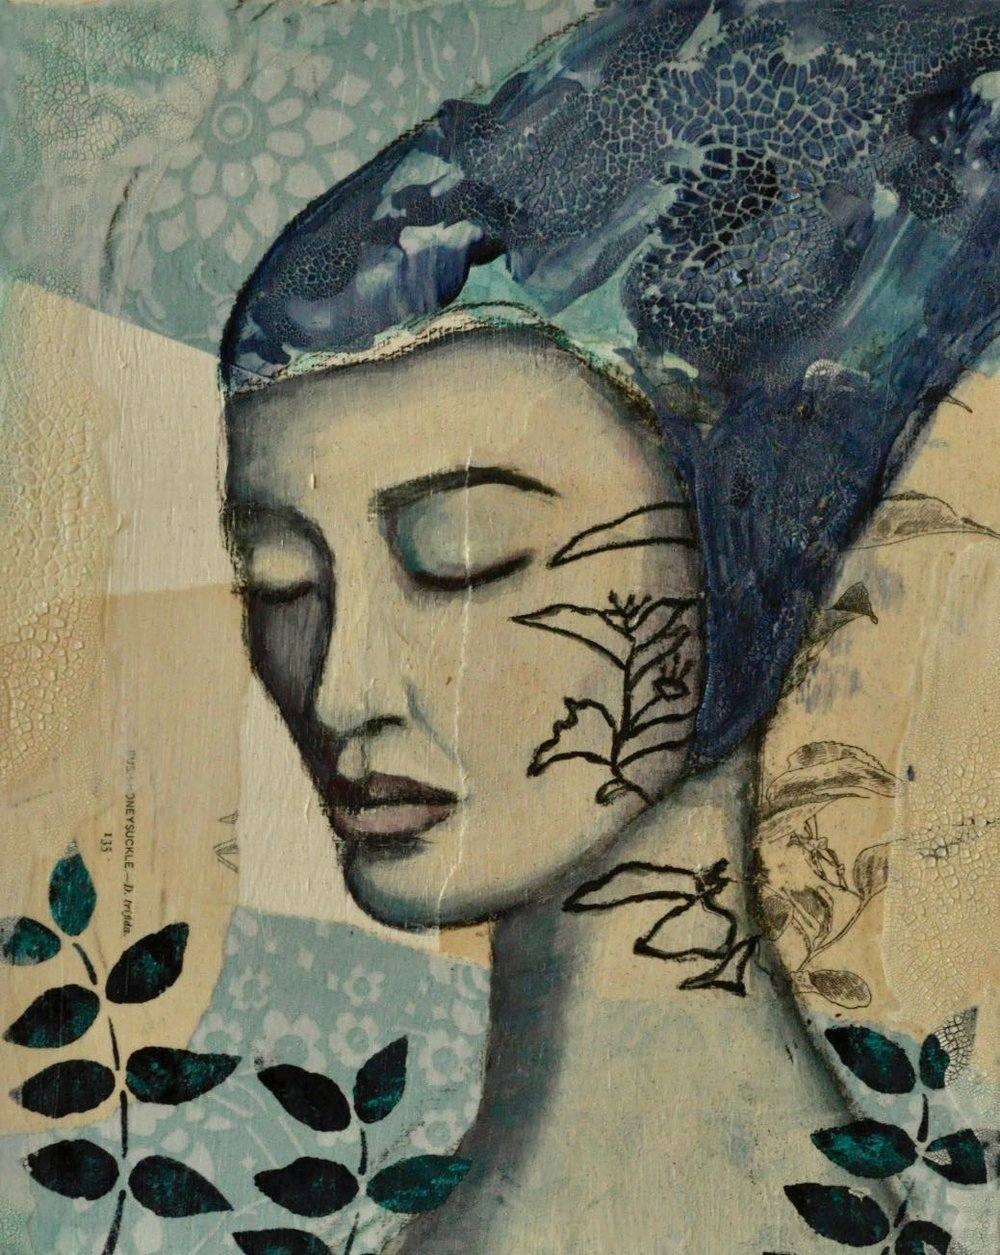 Between Roots and Rings Mixed Media Painting by Melanie Rivers